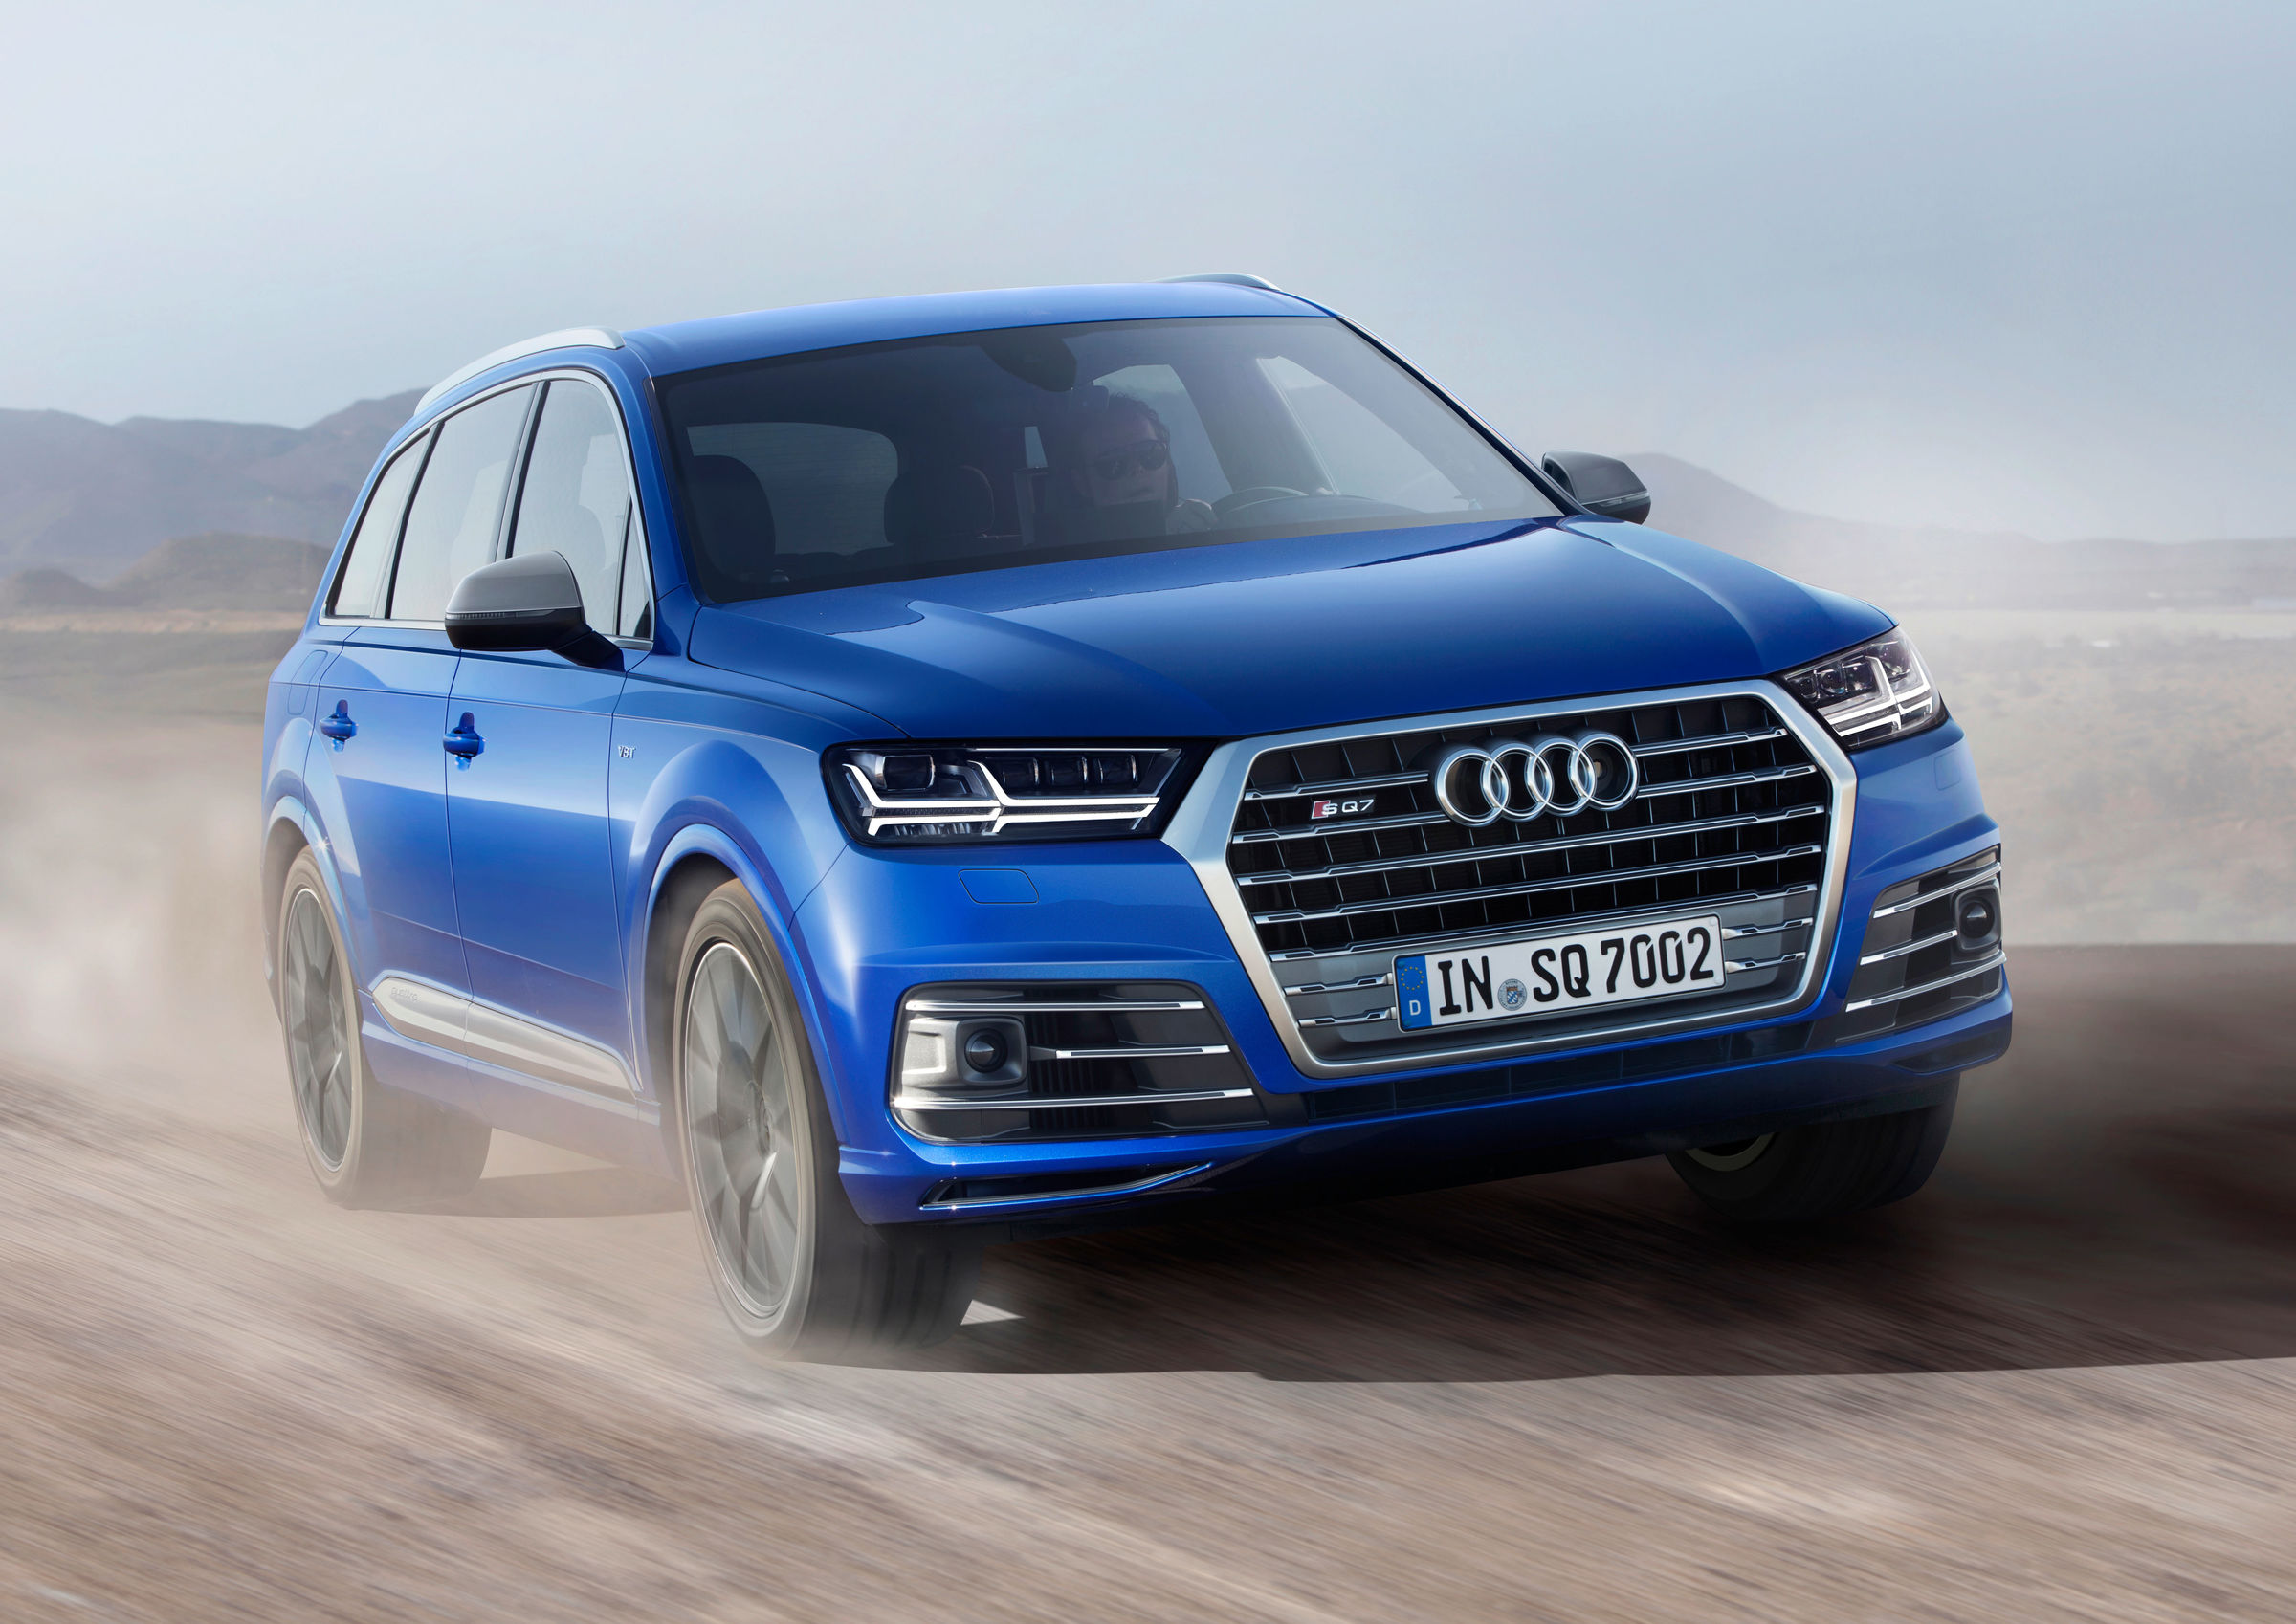 The Audi Sq7 Tdi First S Model Of The Series Audi Mediacenter